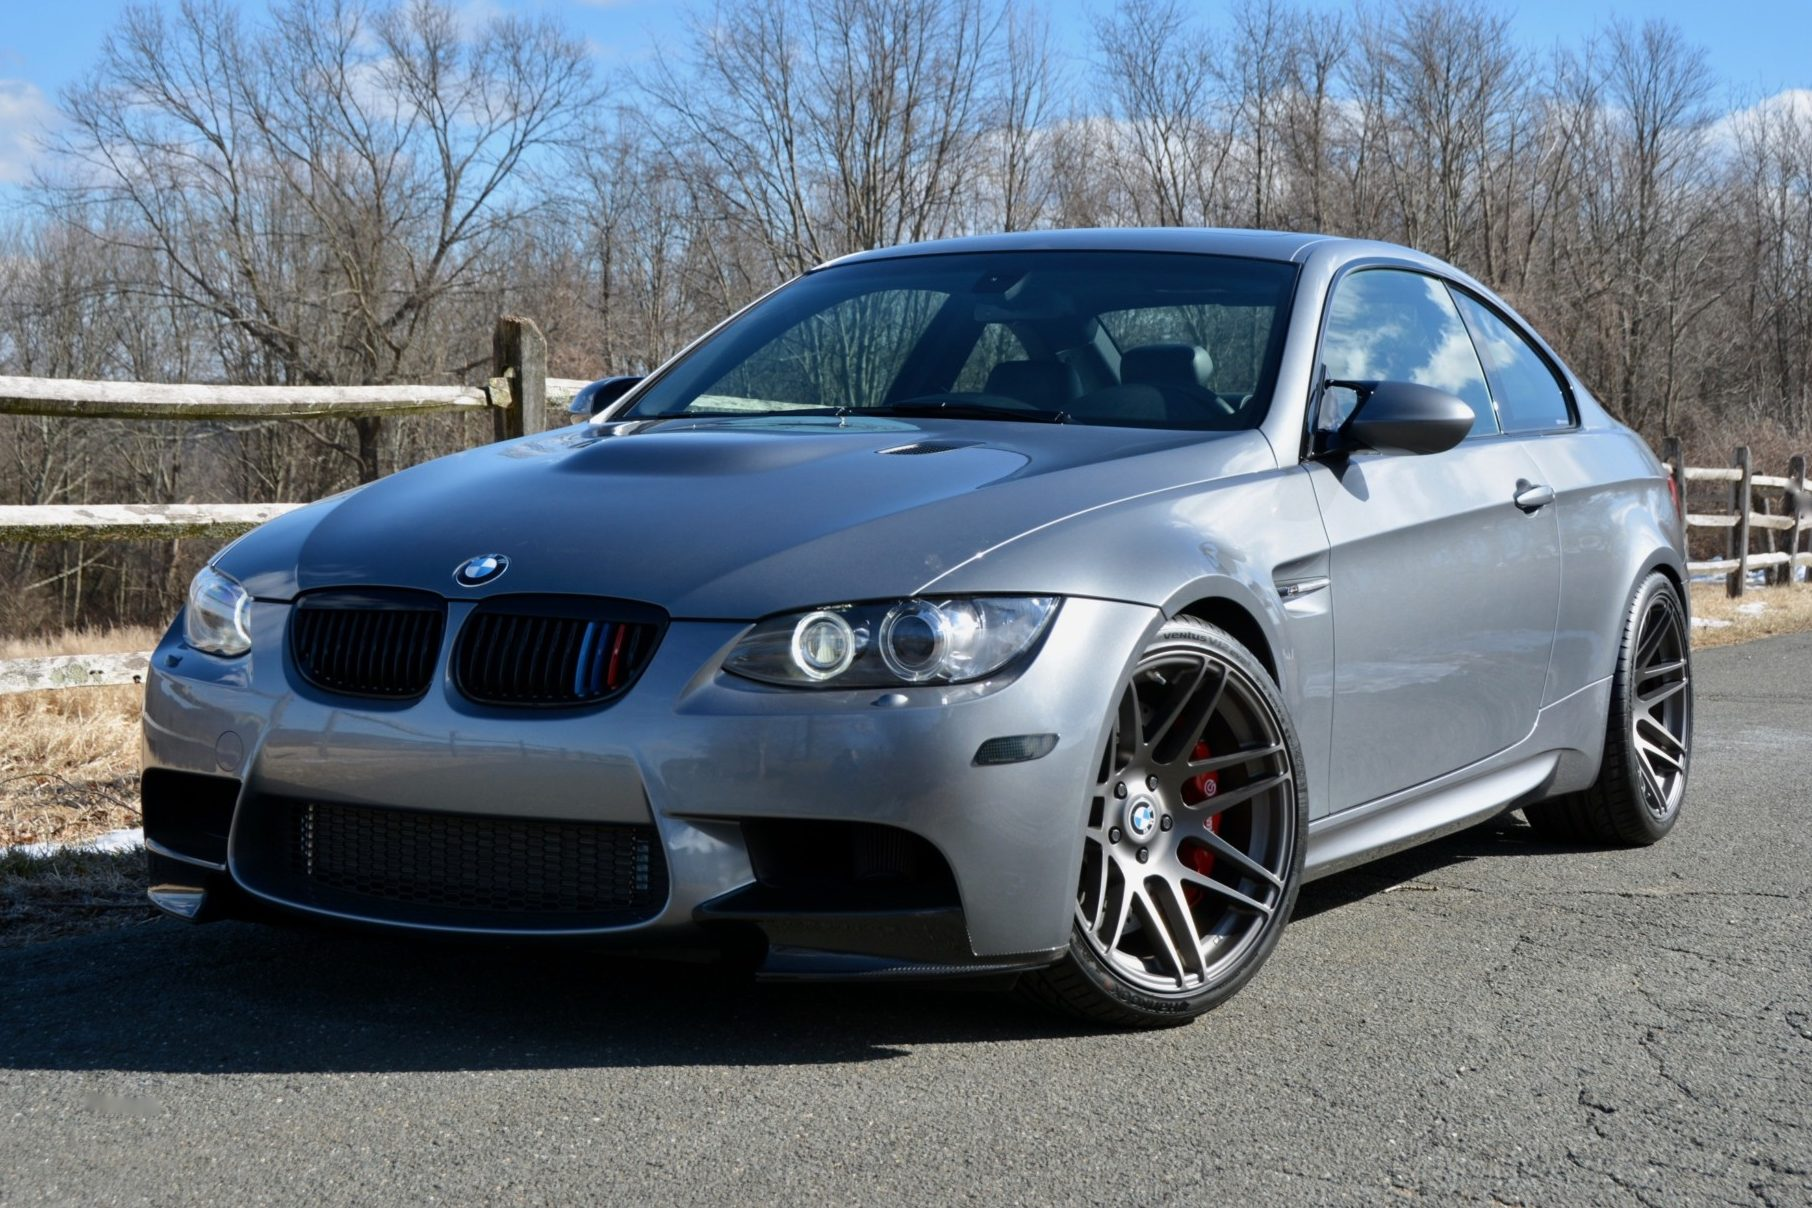 hight resolution of 19k mile supercharged 2010 bmw m3 coupe 6 speed for sale on bat auctions sold for 40 250 on march 13 2019 lot 17 065 bring a trailer